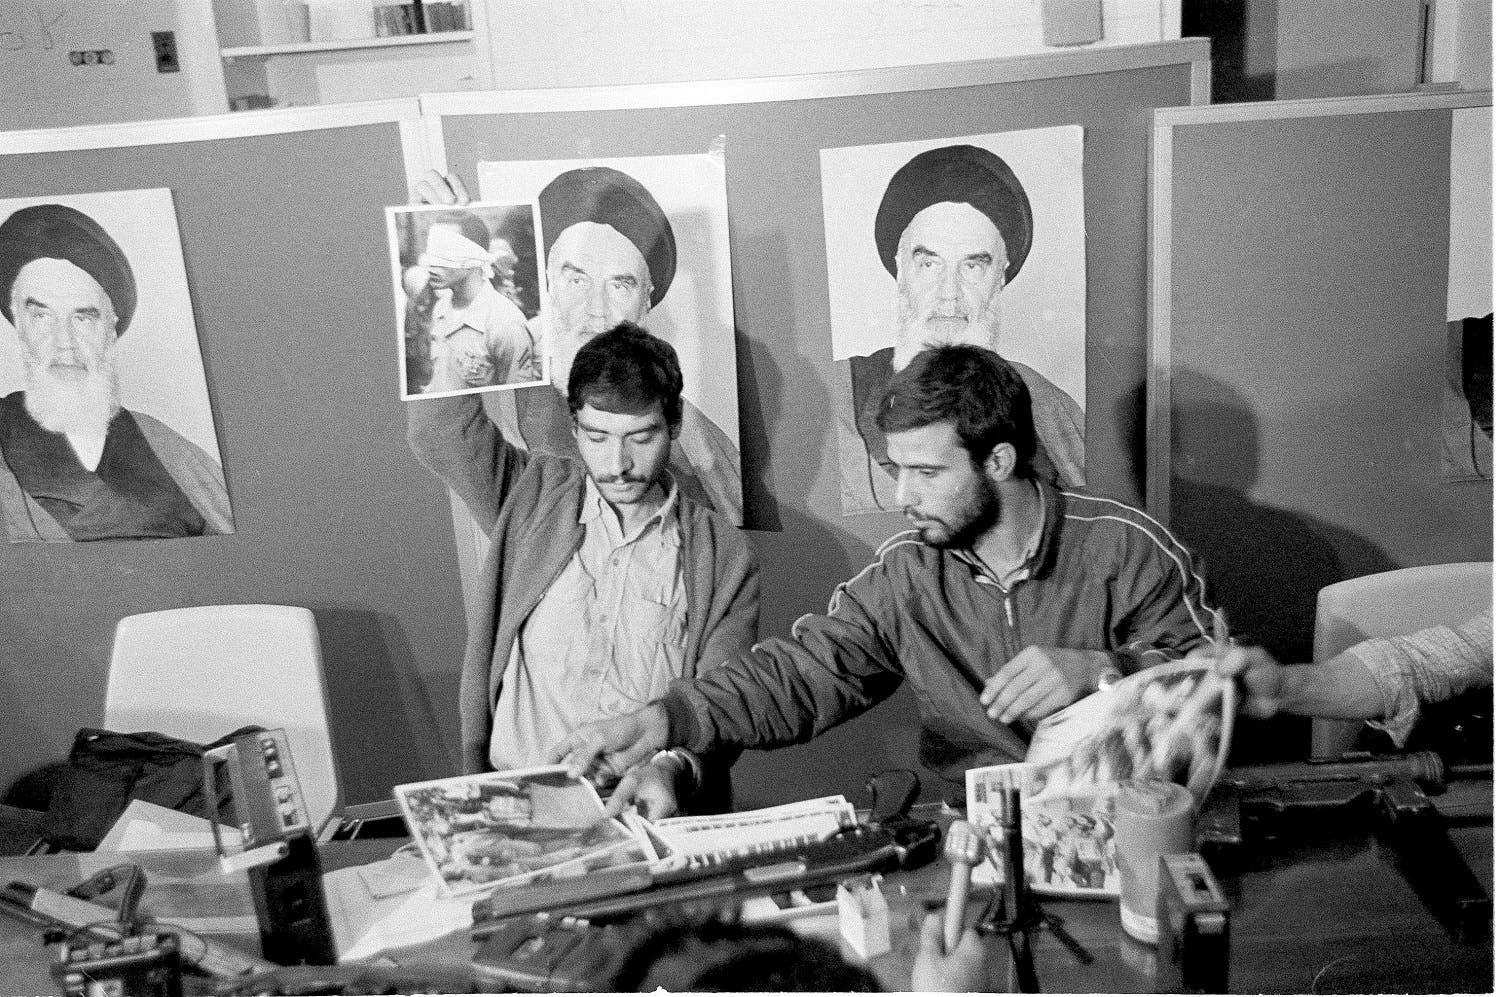 A representative of the Iranian students holds up a portrait of one of the blindfolded hostages, during a press conference in the U.S. Embassy in Tehran, Nov. 5, 1979. (AP)